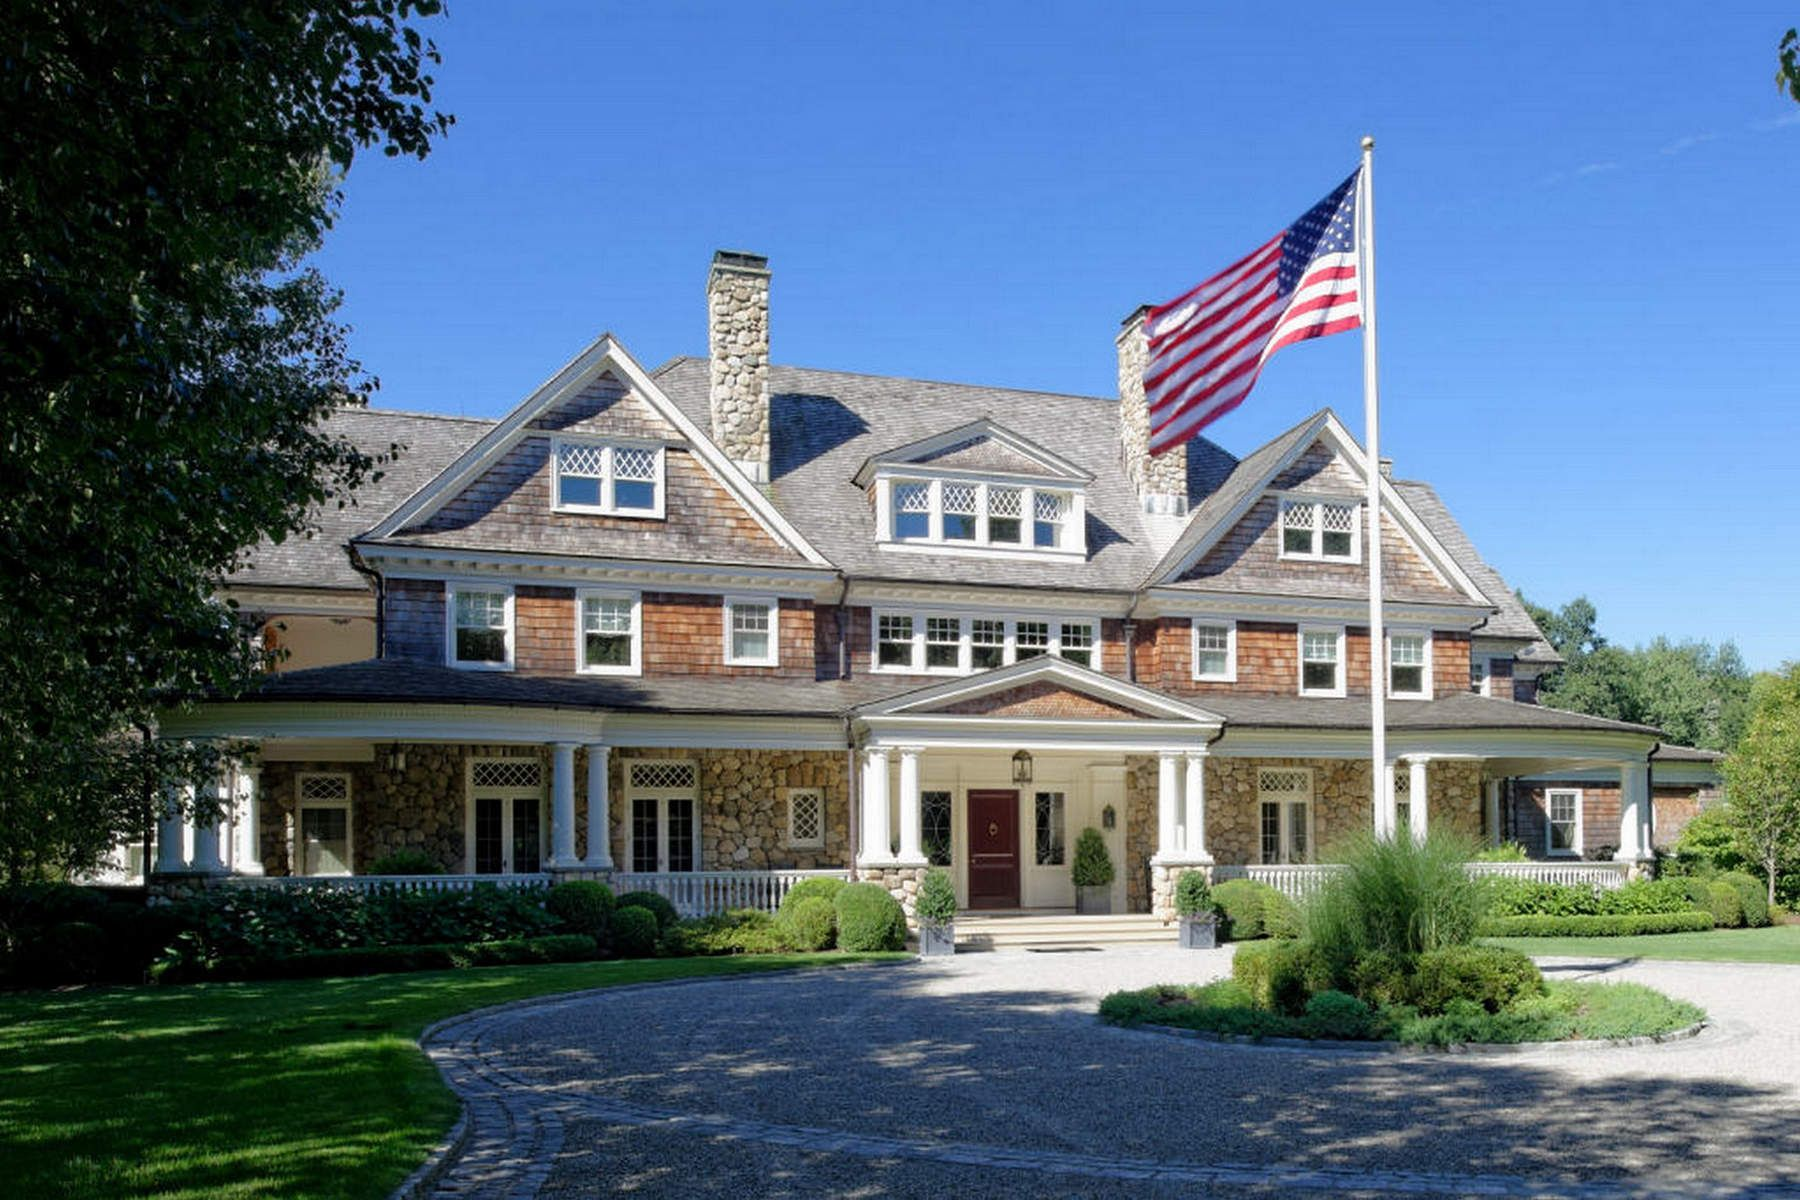 Casa unifamiliar en venta en/de 586 Round Hill Road, Greenwich, Connecticut ,06831  , EUA